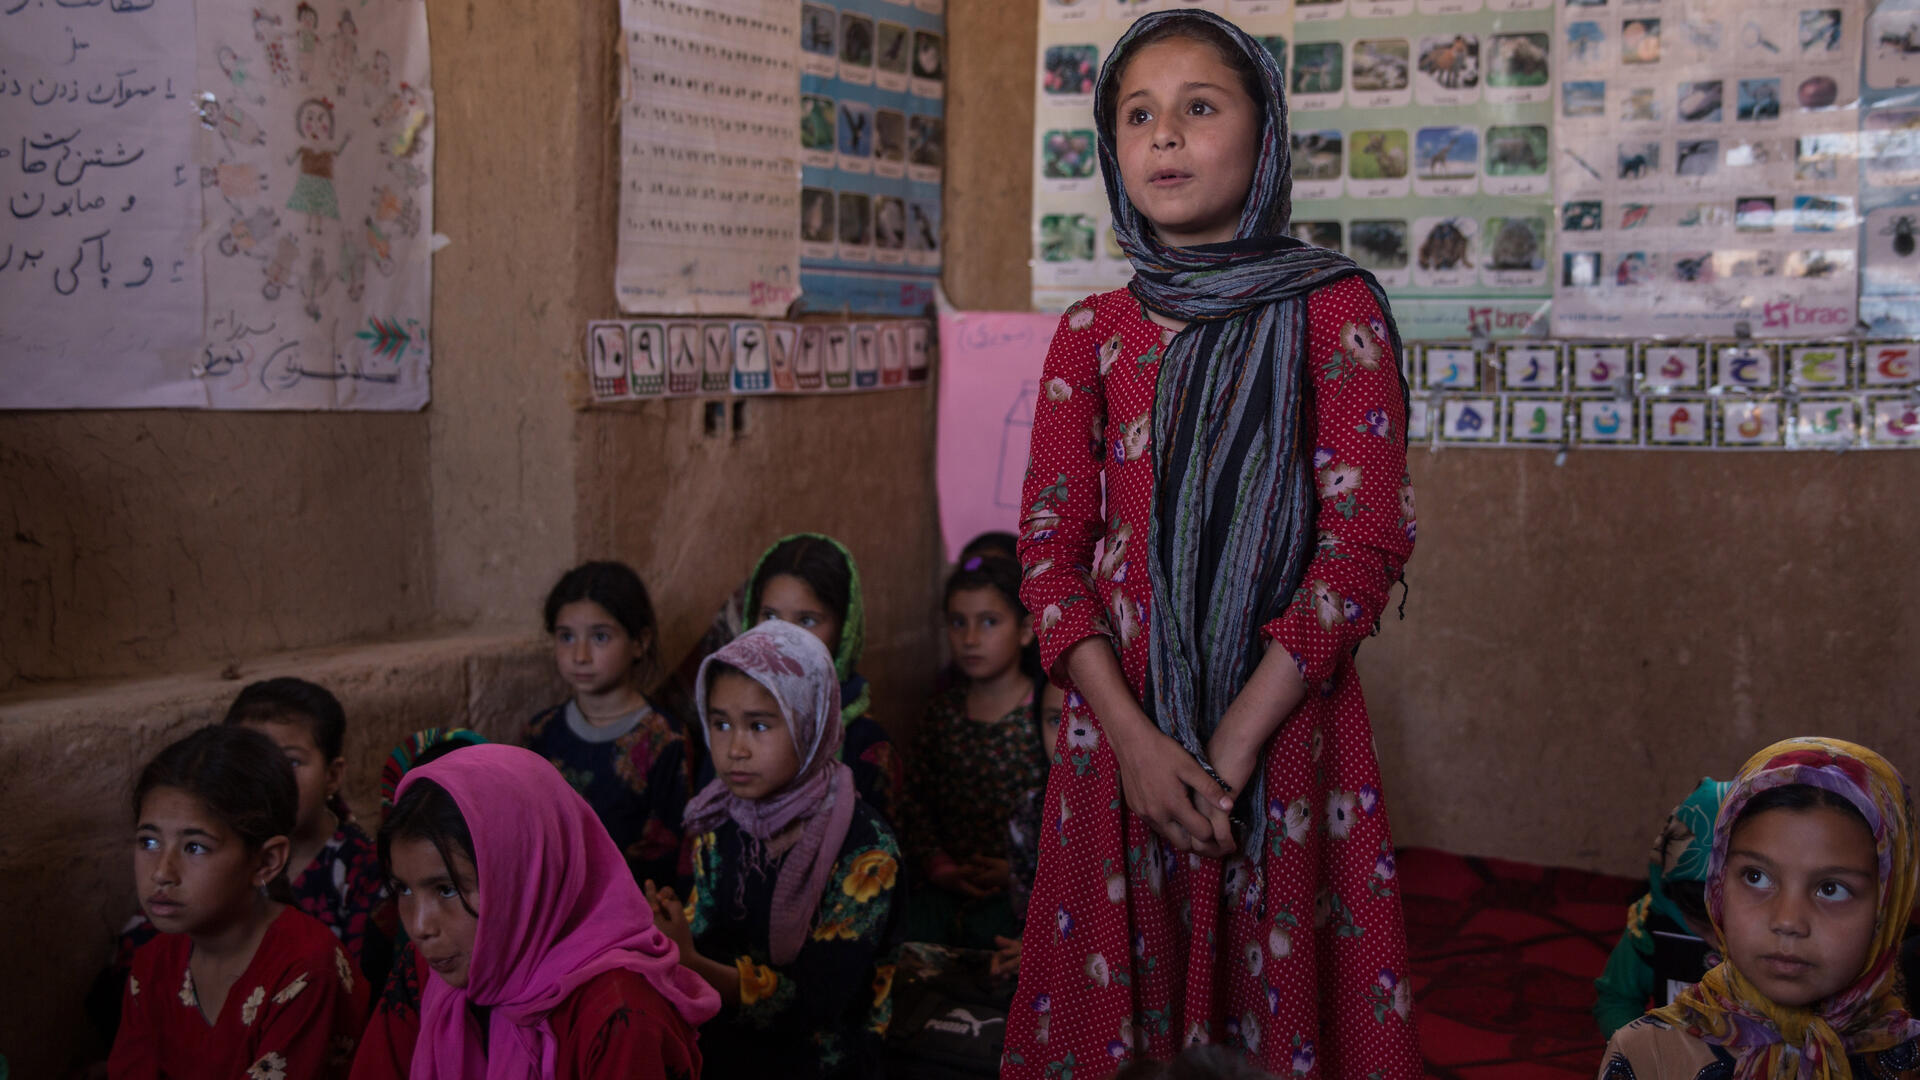 A young girl stands to speak, hands clasped, in a classroom in Afghanistan.